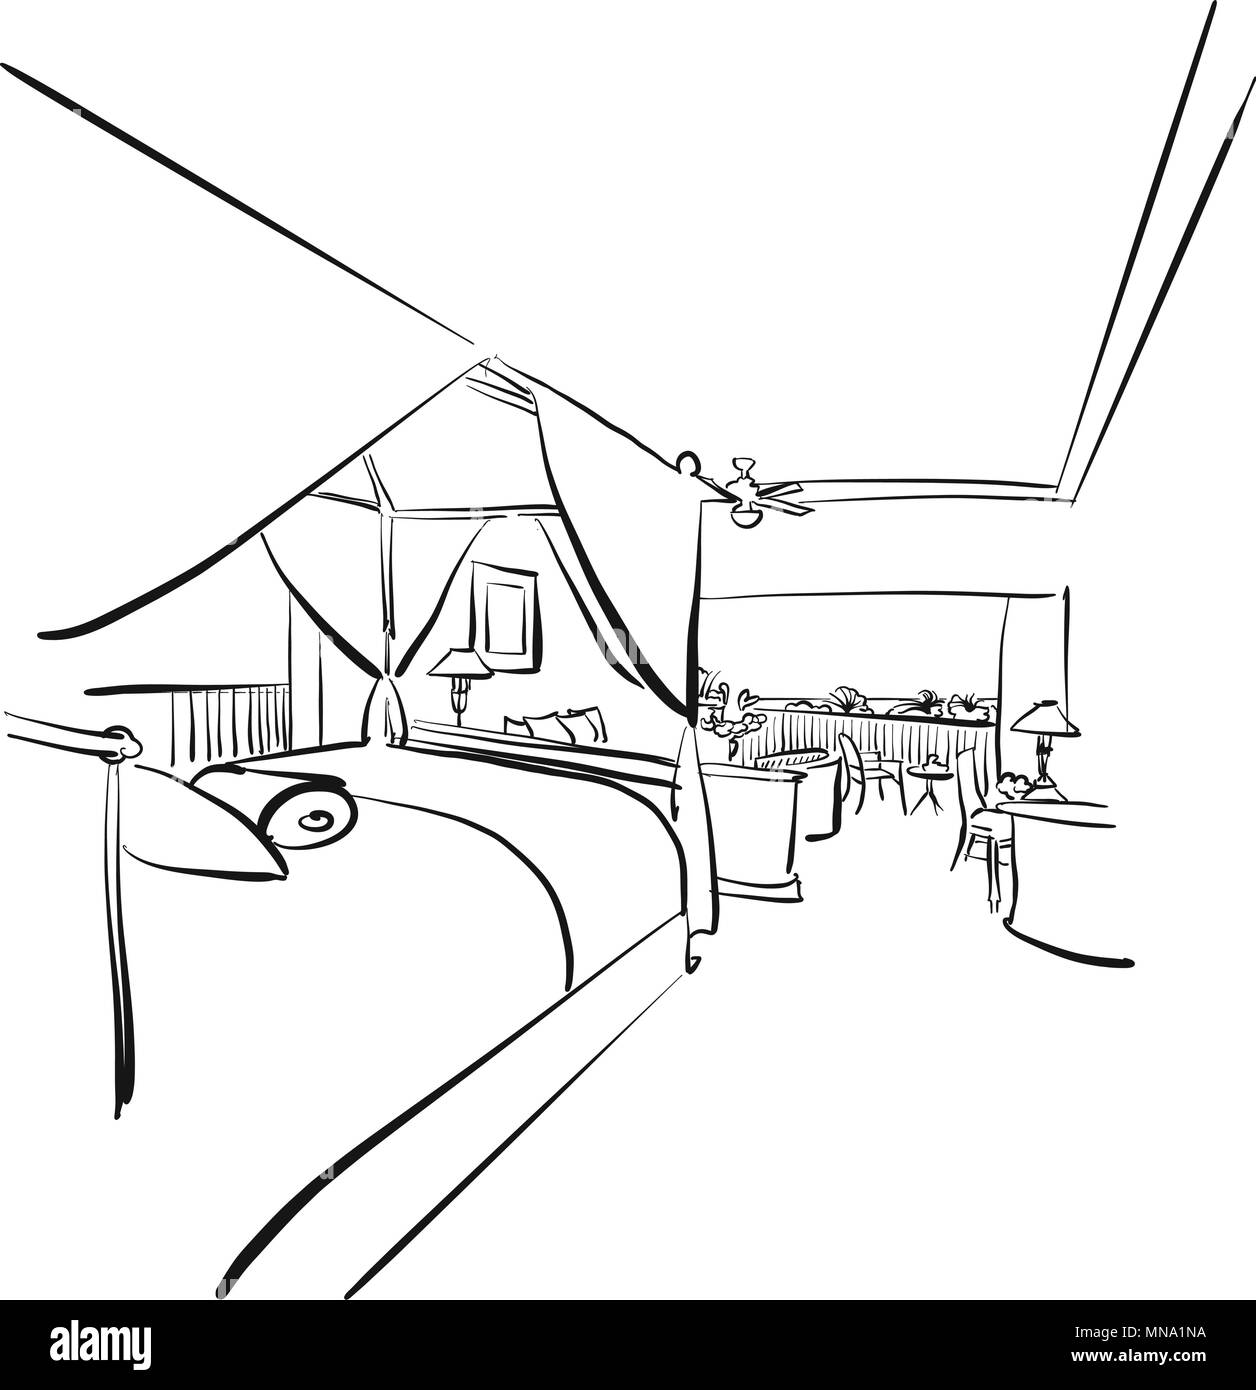 https://c8.alamy.com/comp/MNA1NA/sketched-hotel-room-interieur-with-balcony-hand-drawn-vector-artwork-MNA1NA.jpg